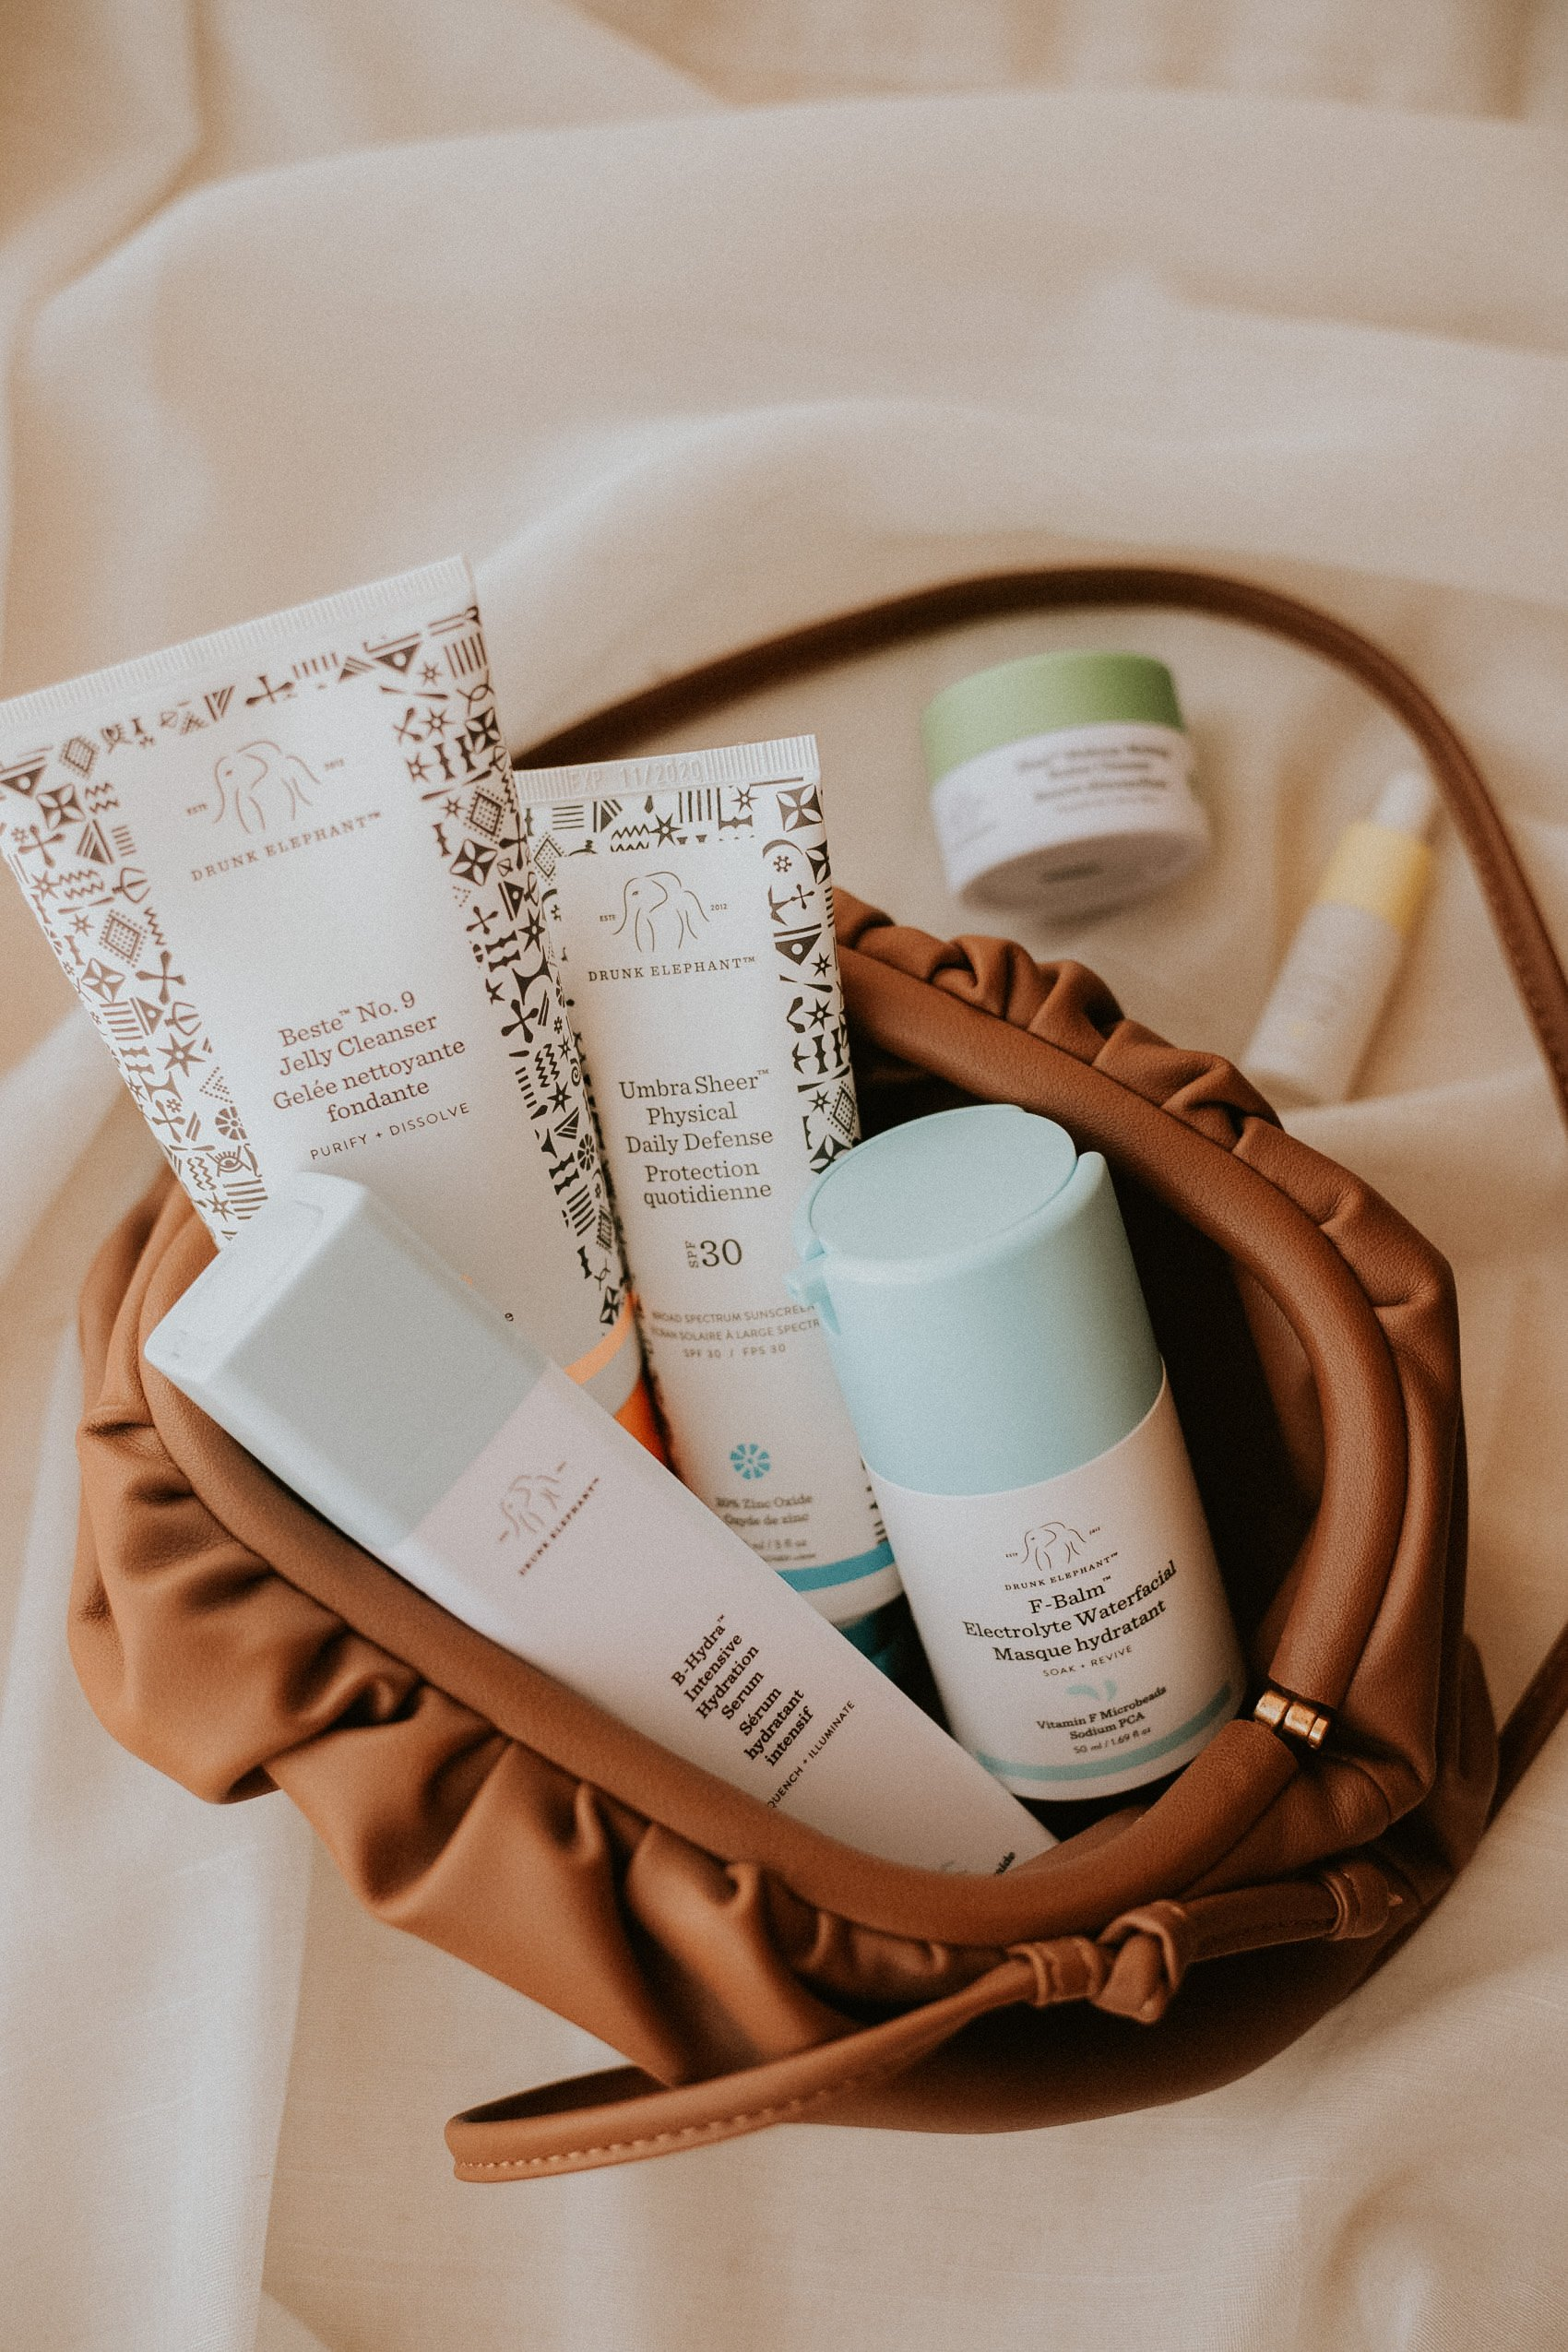 Drunk Elephant Winter Skincare Products in a Makeup Bag